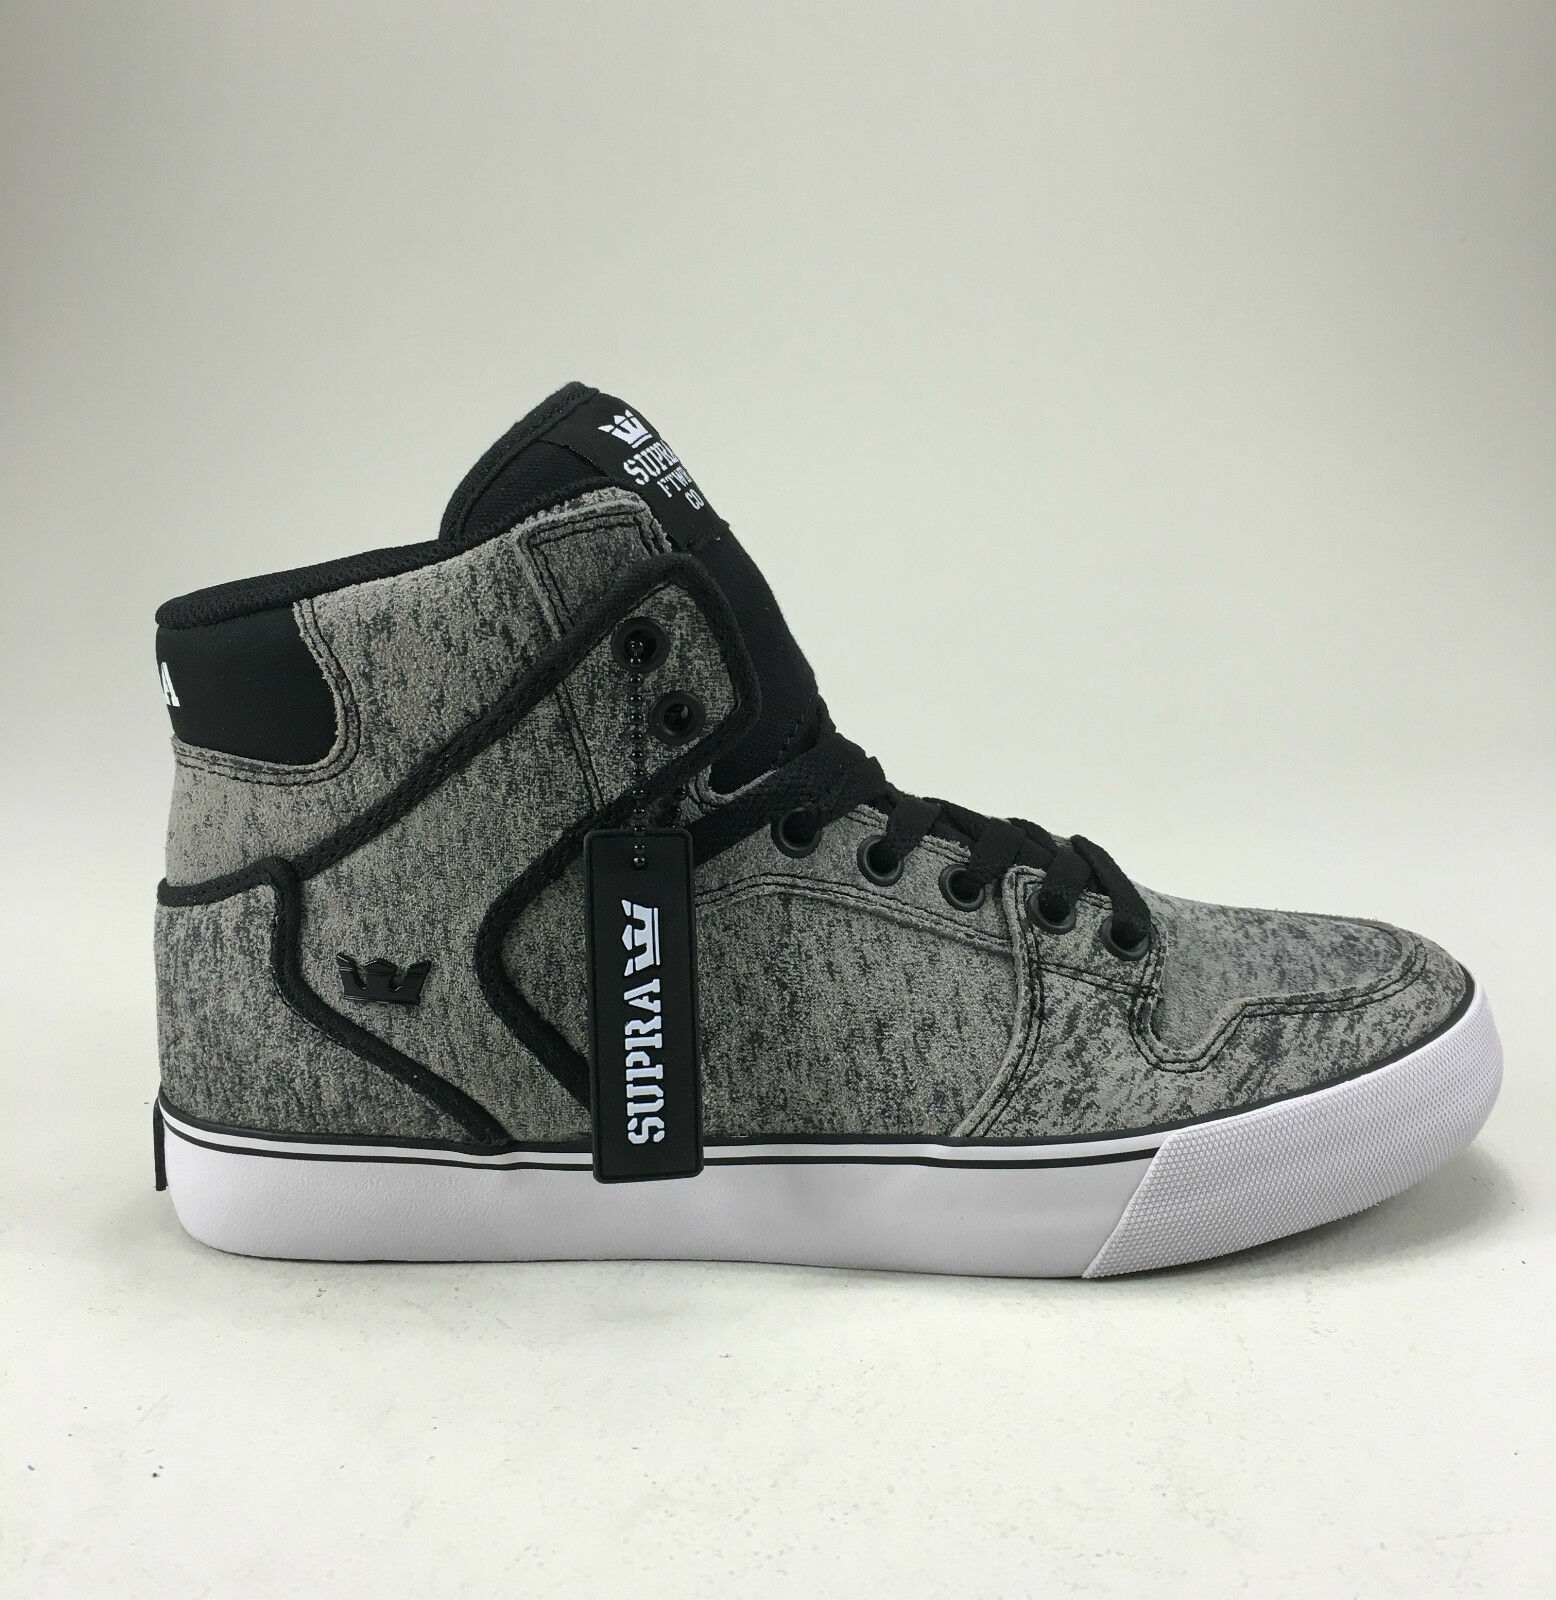 Supra Vaider shoes Trainers Grey White  Brand new in box in Size